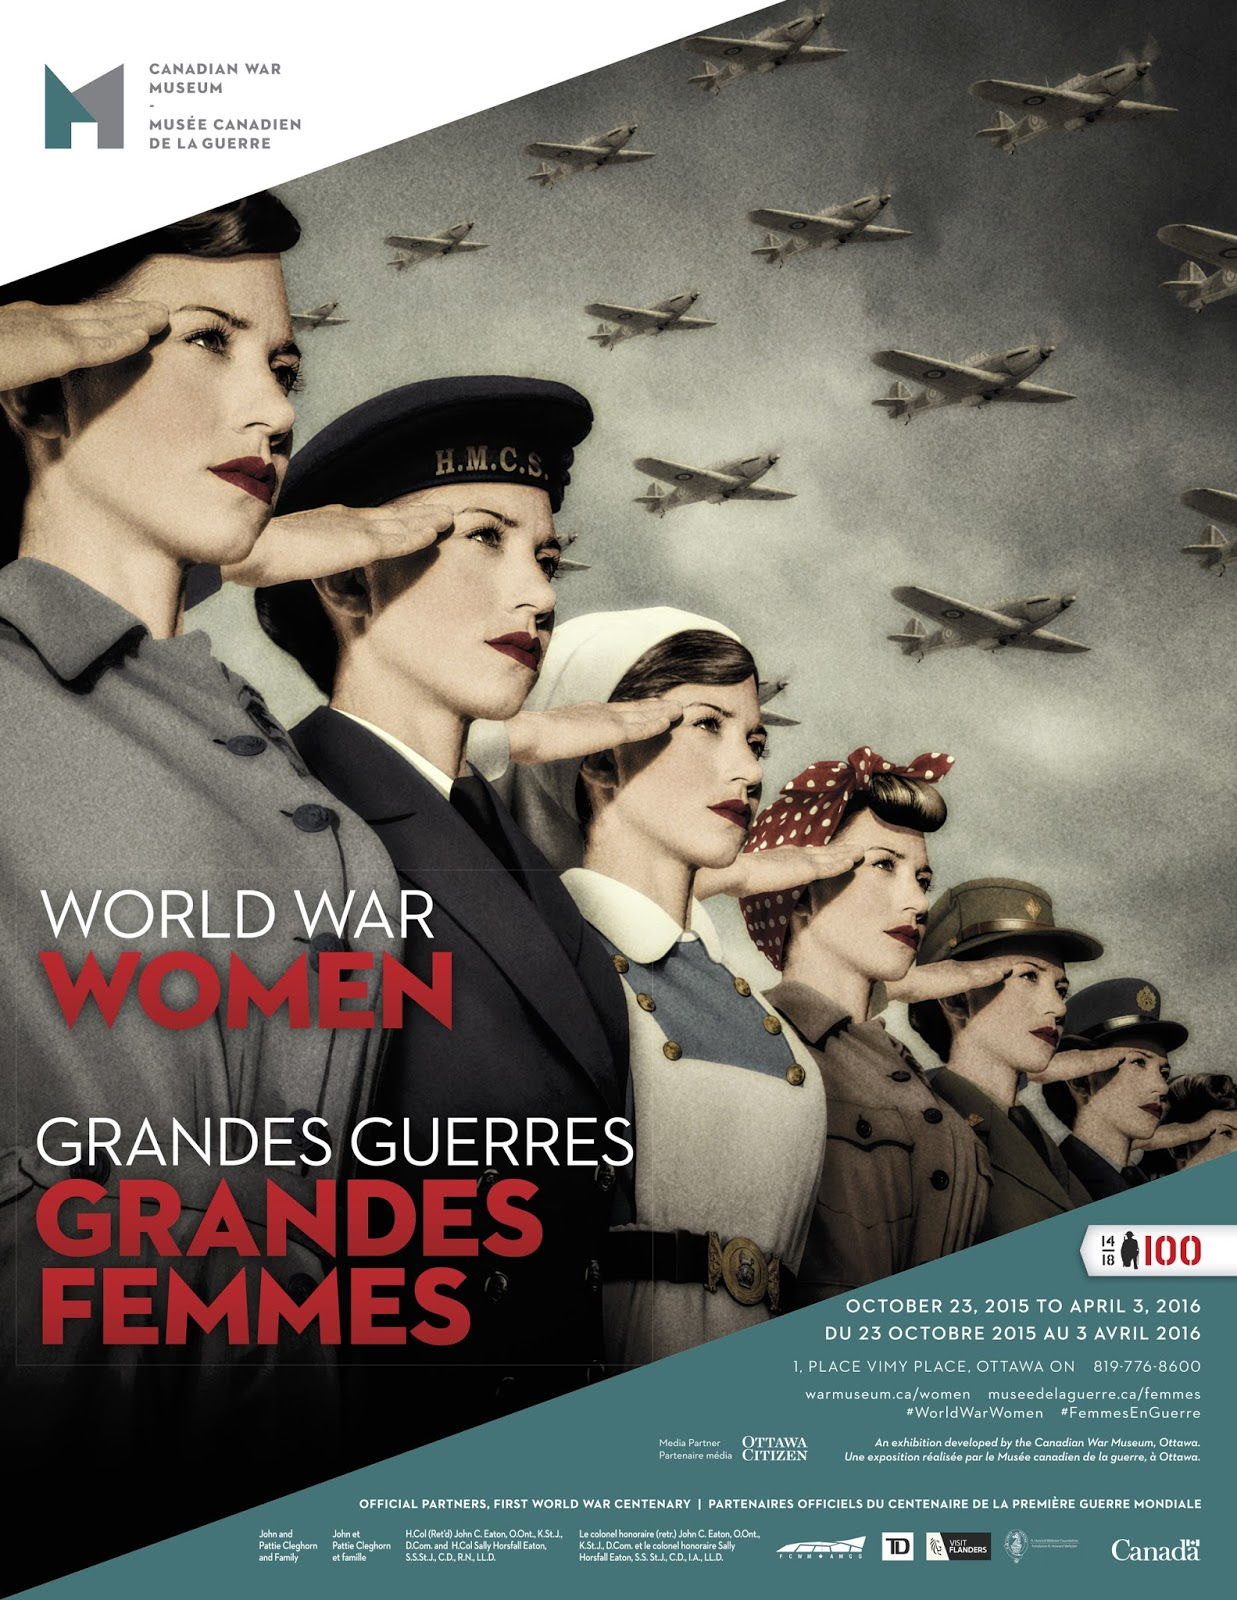 canadian women and the second world war essay It was hardly known that a second world war would emerge at the end of the first war that claimed countless lives the role of canadian women in the war cannot be overlooked with over 10 years in the essay business.